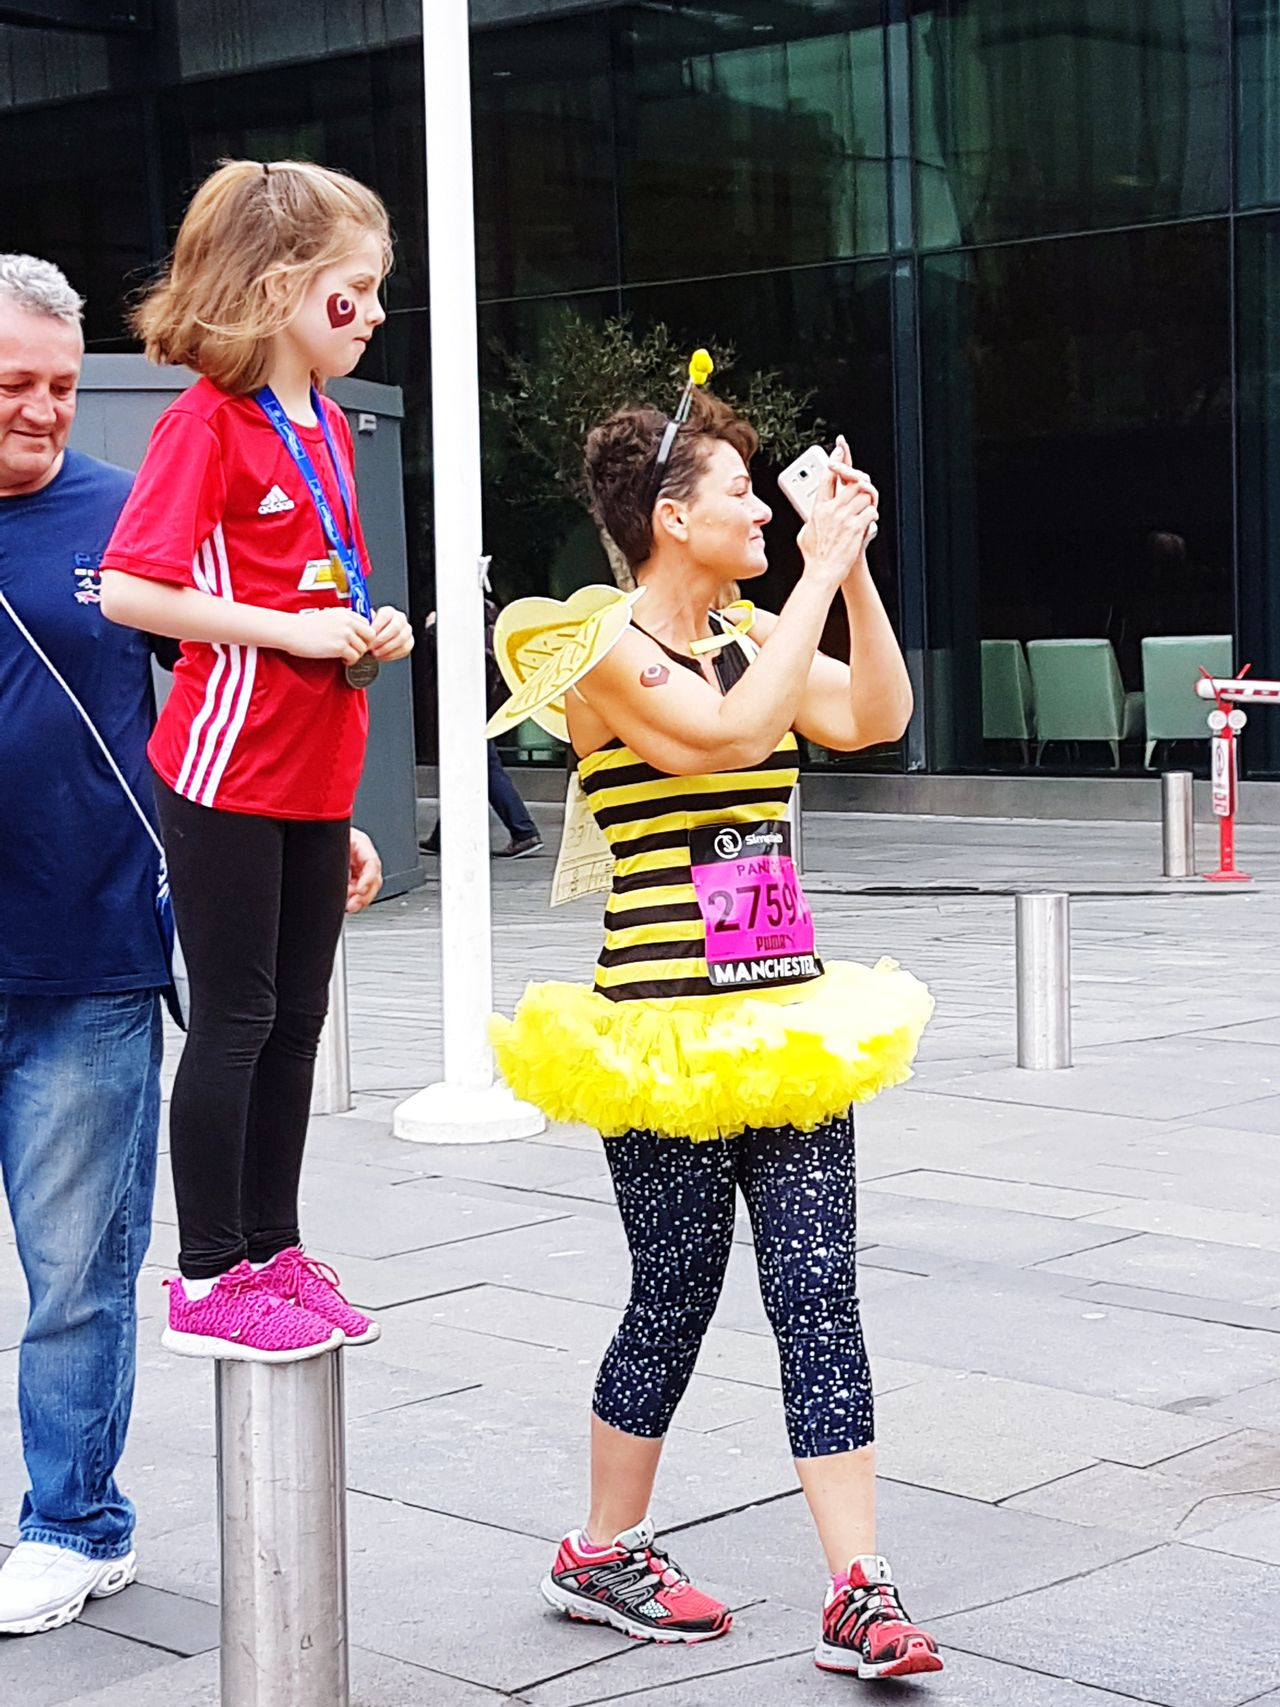 Full Length Young Women People Child Lifestyles Togetherness Girls Women Adult Friendship Unity Capturing The Moment Charity Event Outdoors Manchester UK Race Group Of People Great North Run Charity Real People City Life City Street Fancy Dress Running Runners